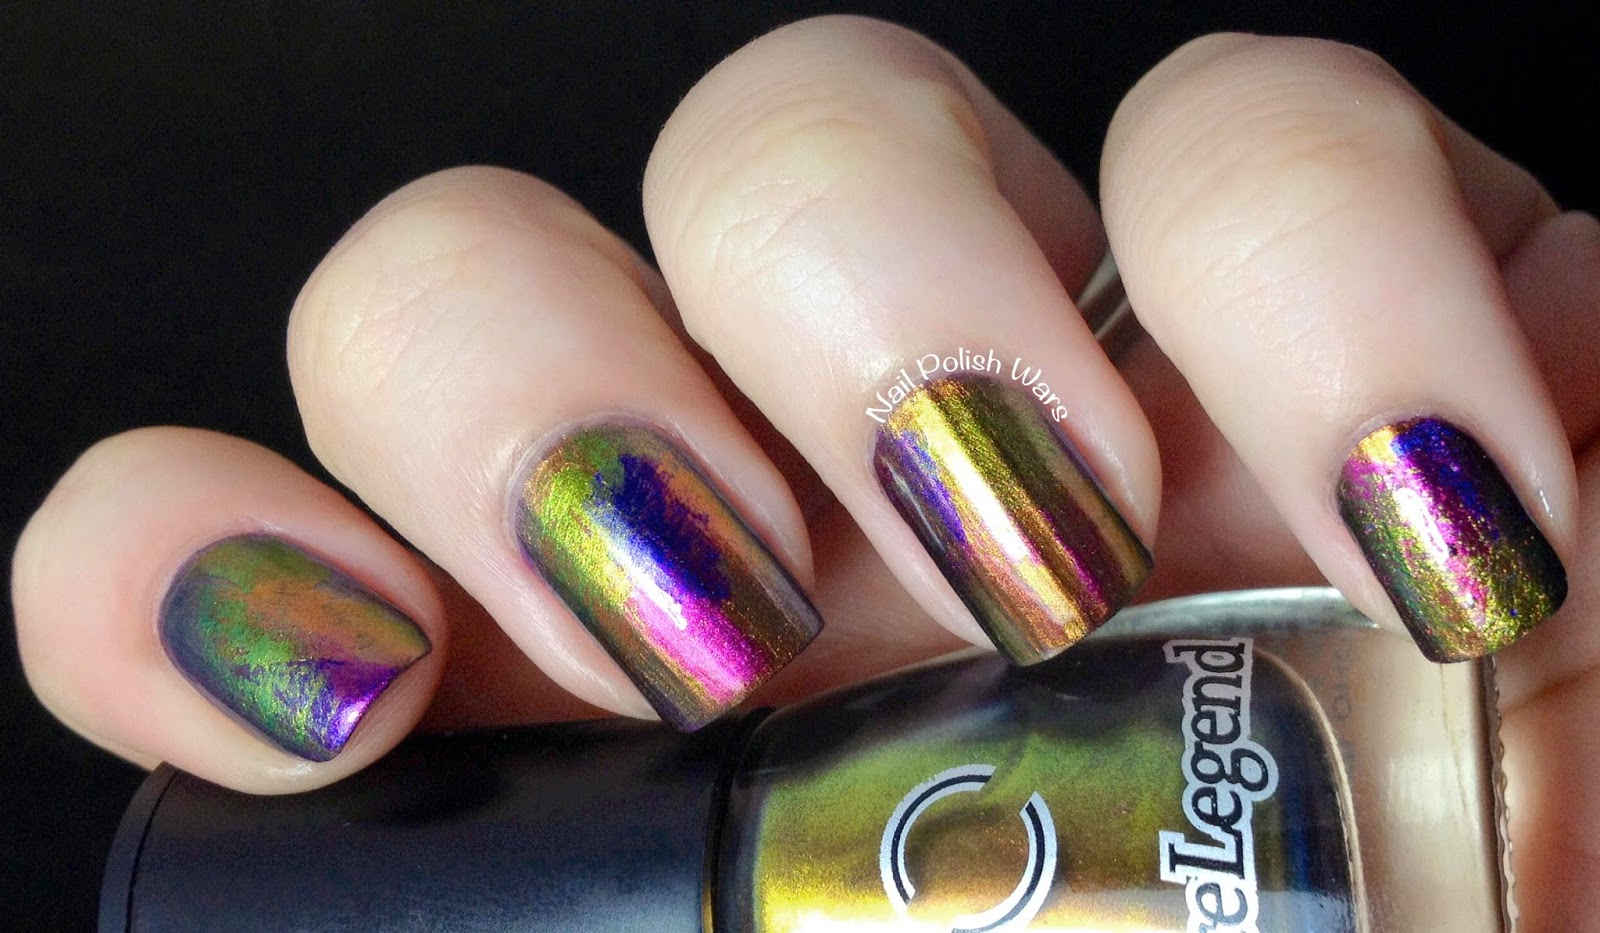 Nail Polish Wars: Oil Slick